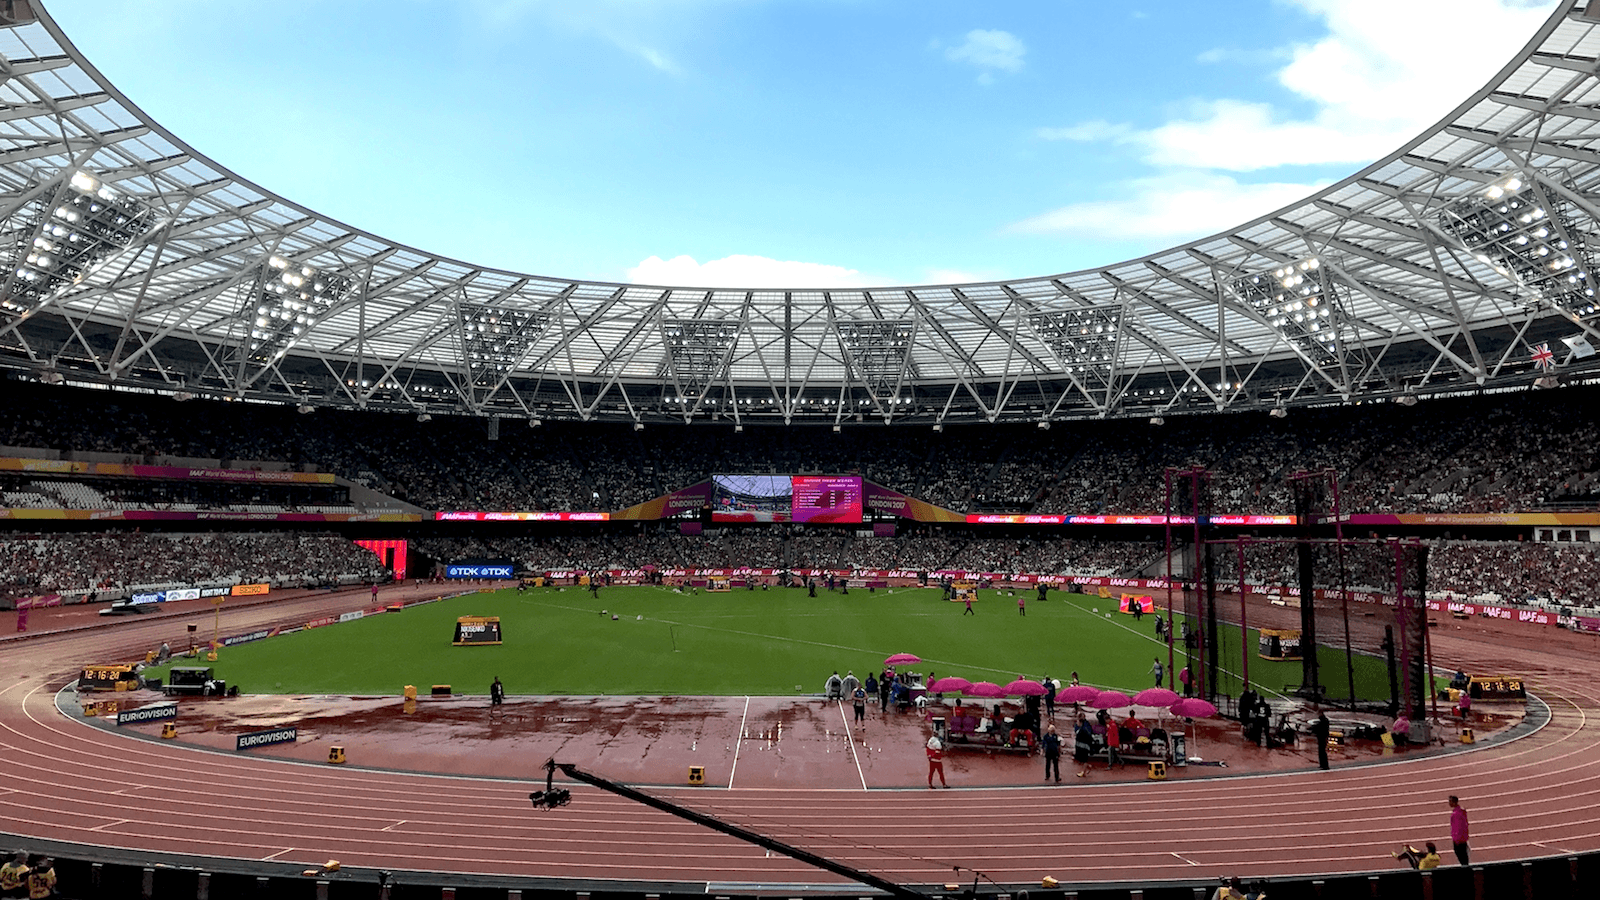 IAAF World Championships 2017 - Day 2